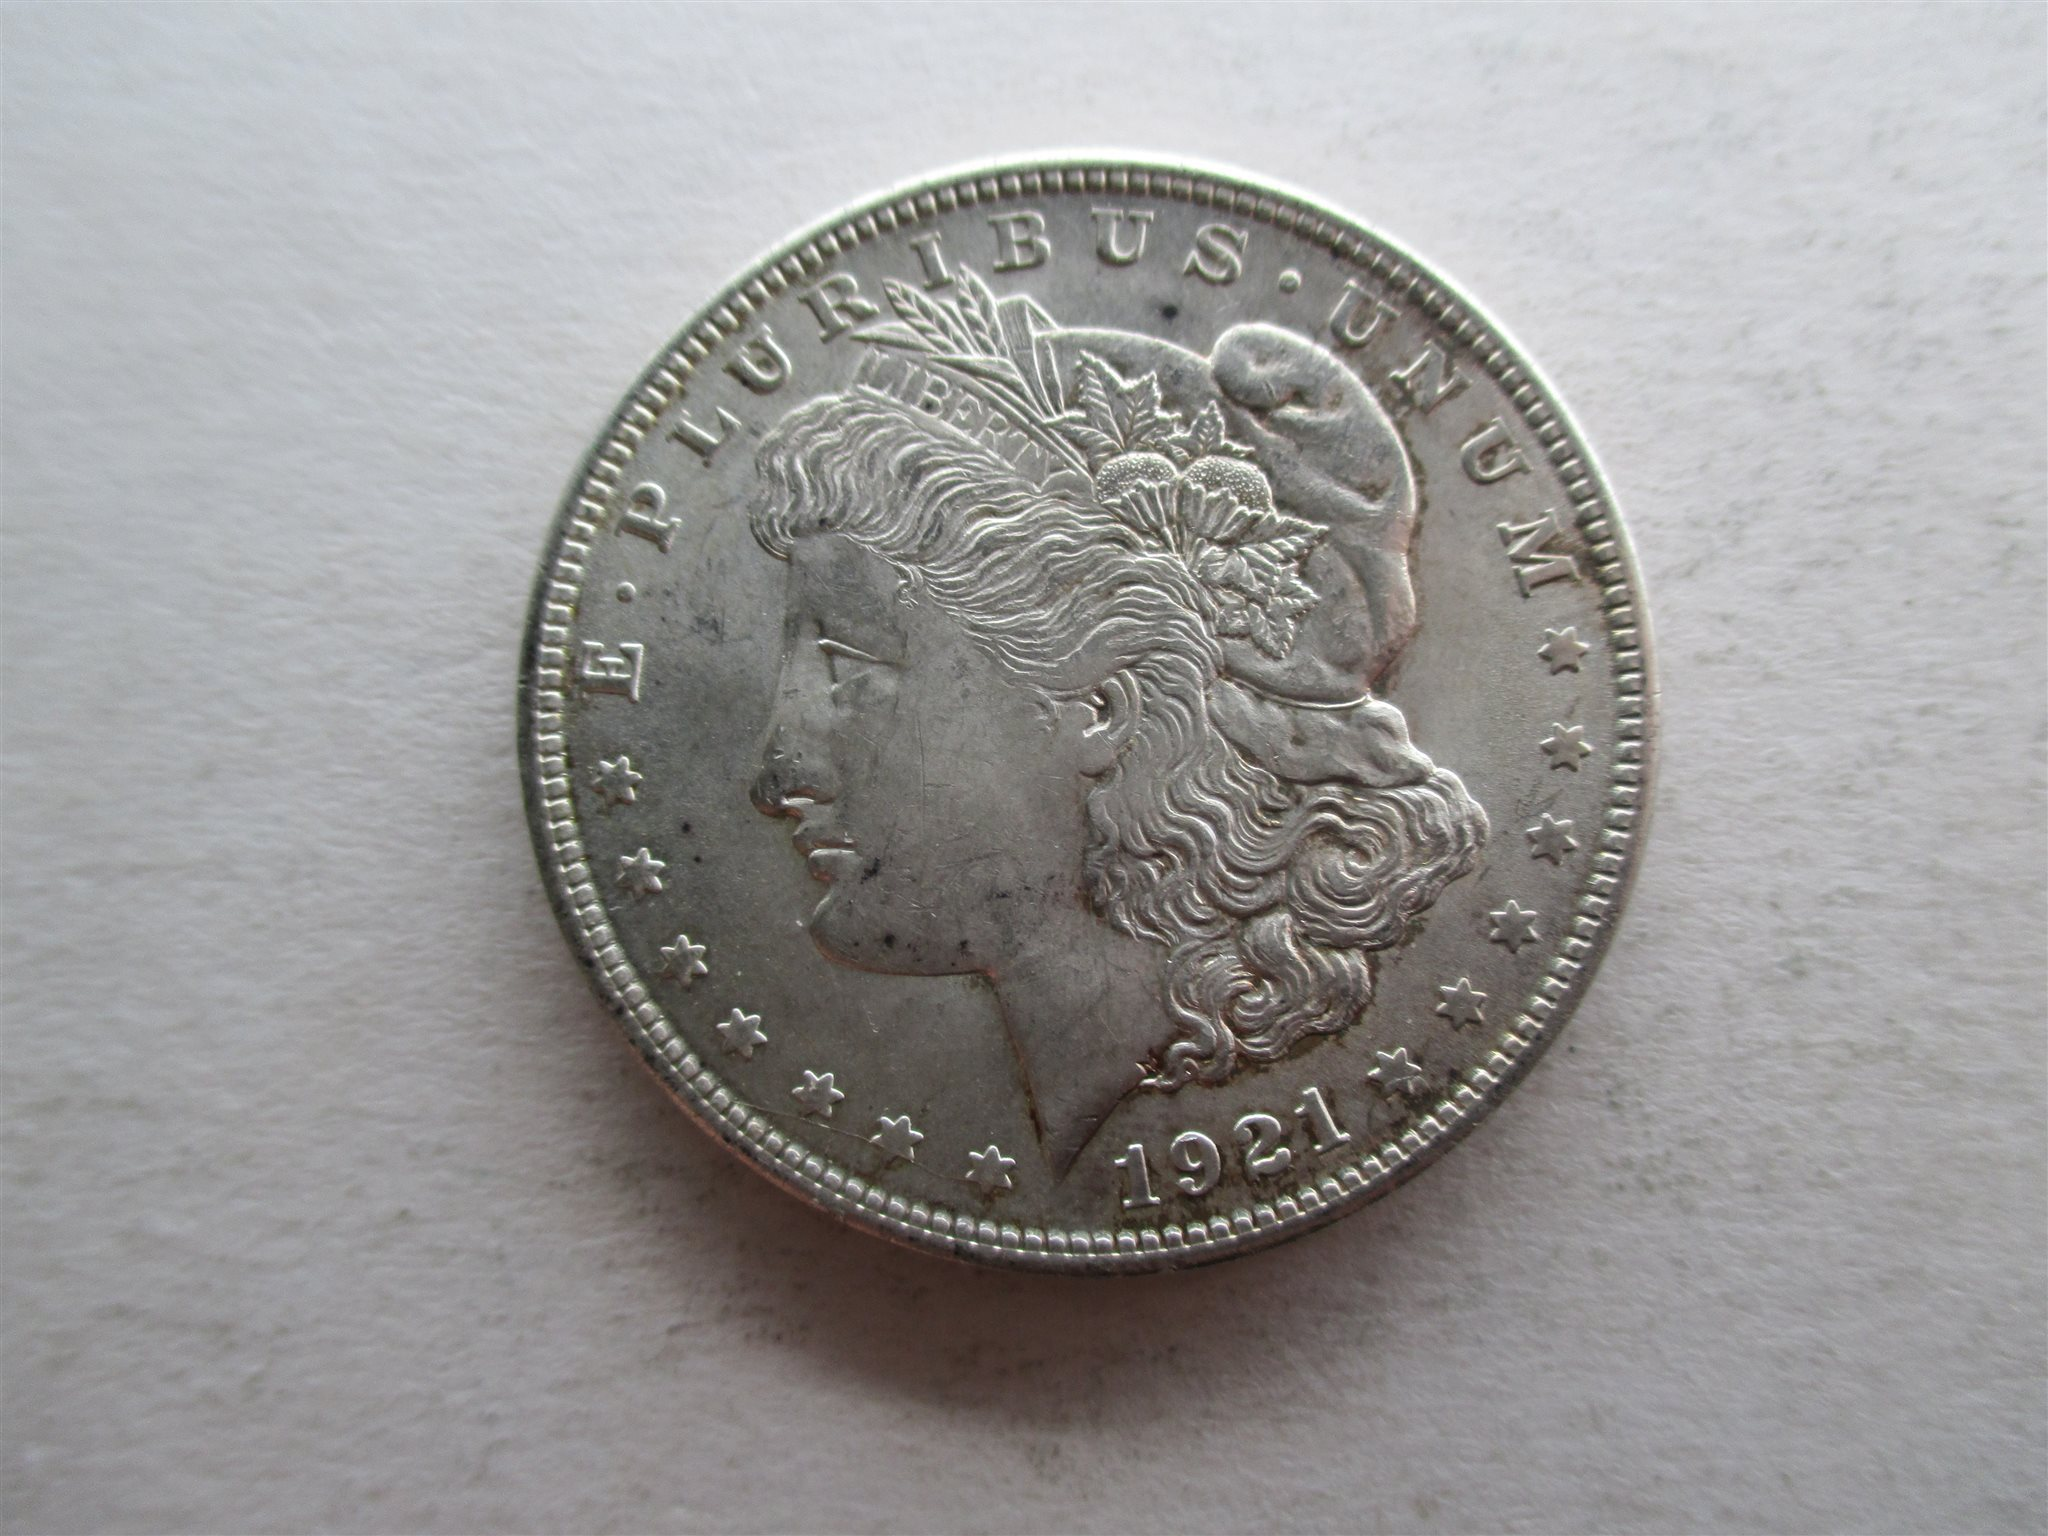 Usa 1 dollar, 1921 morgan